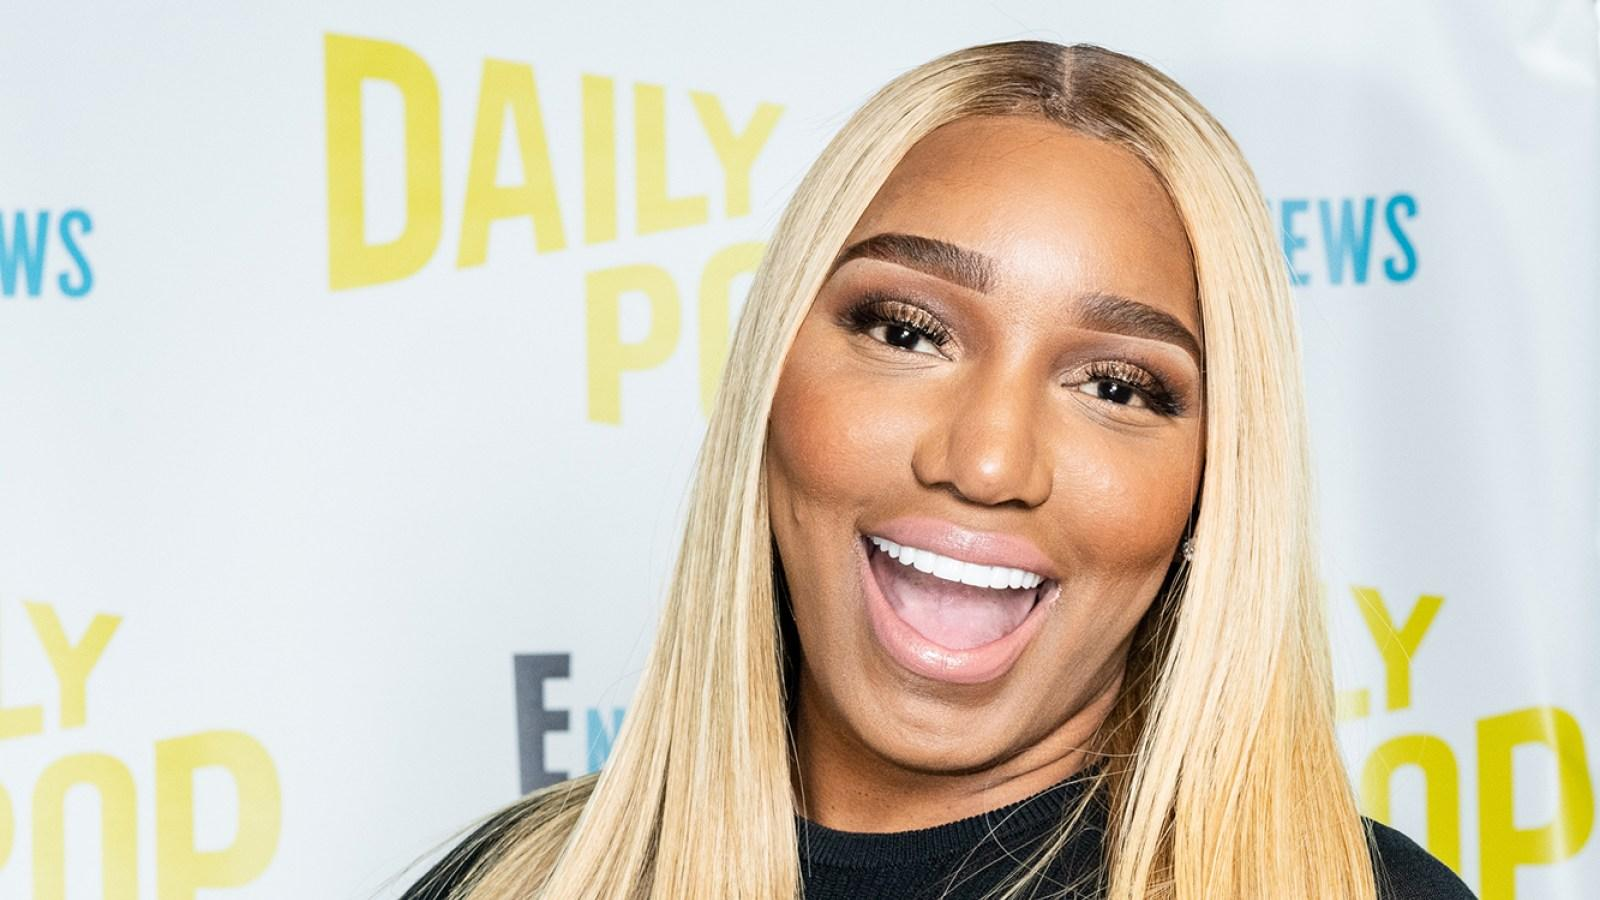 NeNe Leakes Celebrates Pride Month And Fans Offer Their Gratitude